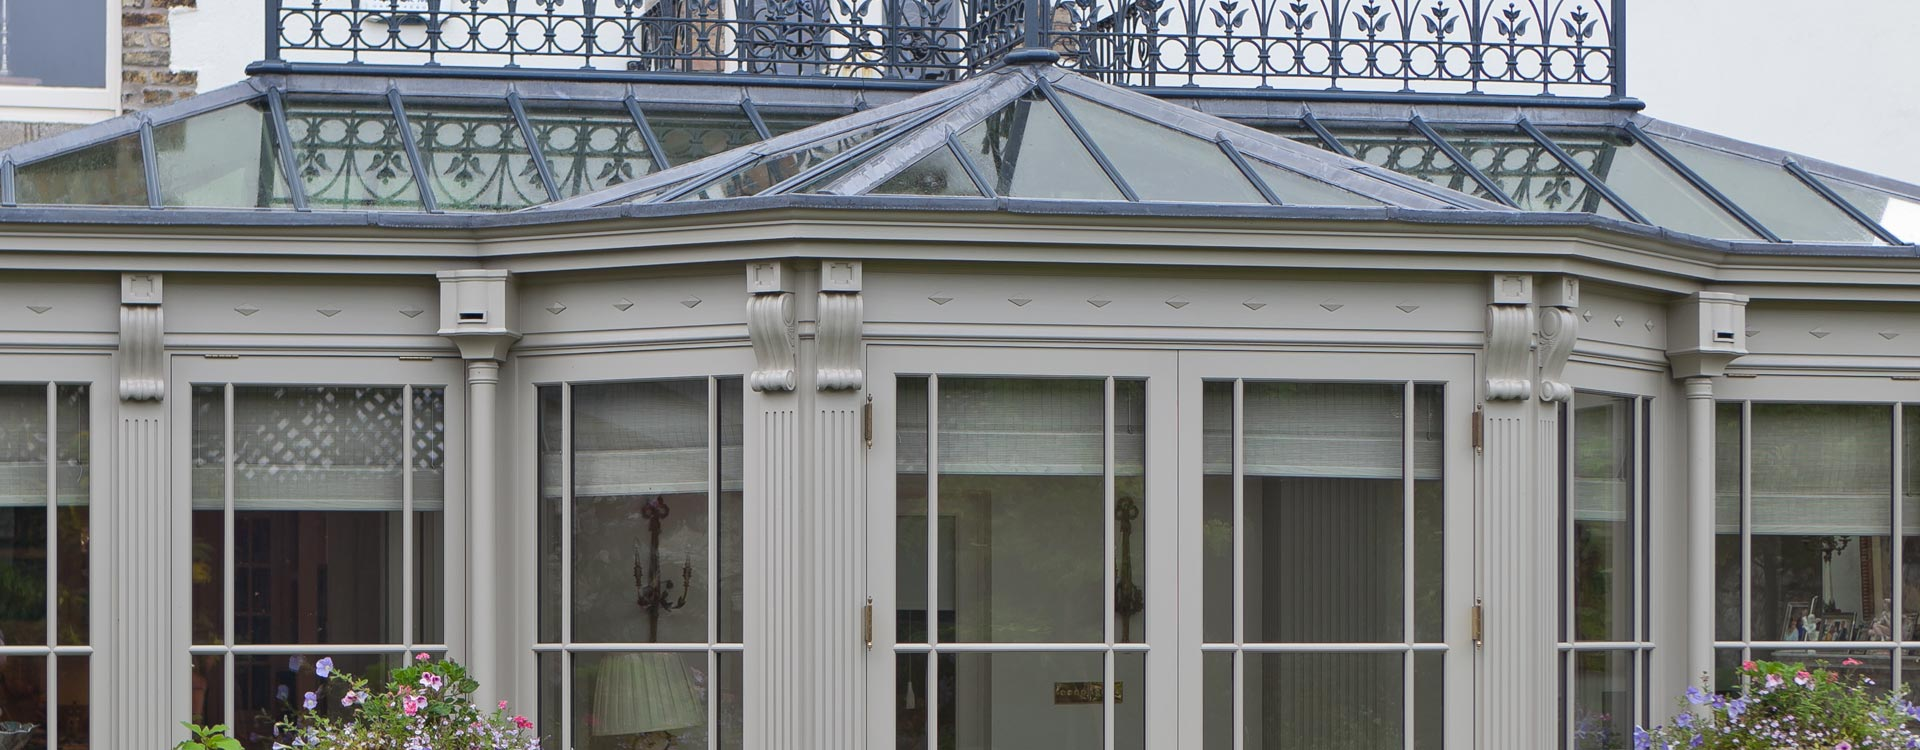 Elaborate joinery on a conservatory